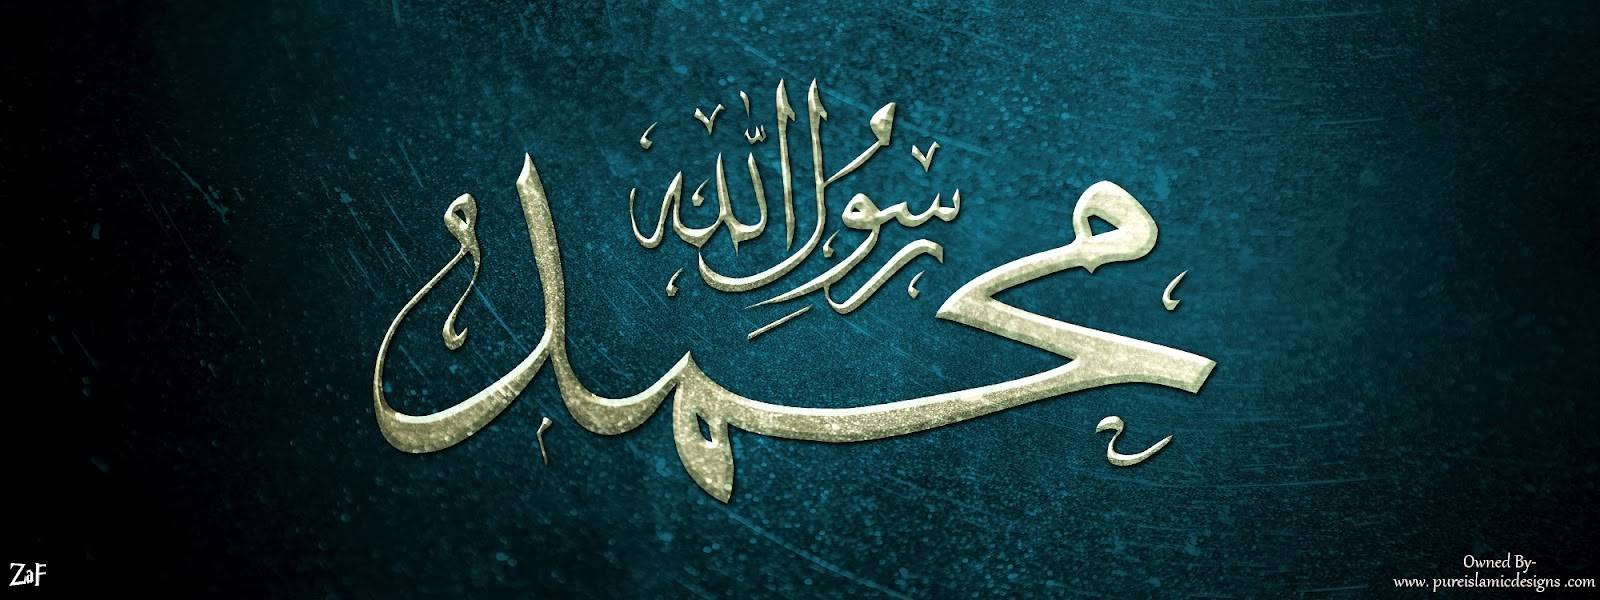 12 pieces of great advice from prophet muhammad the muslim vibe